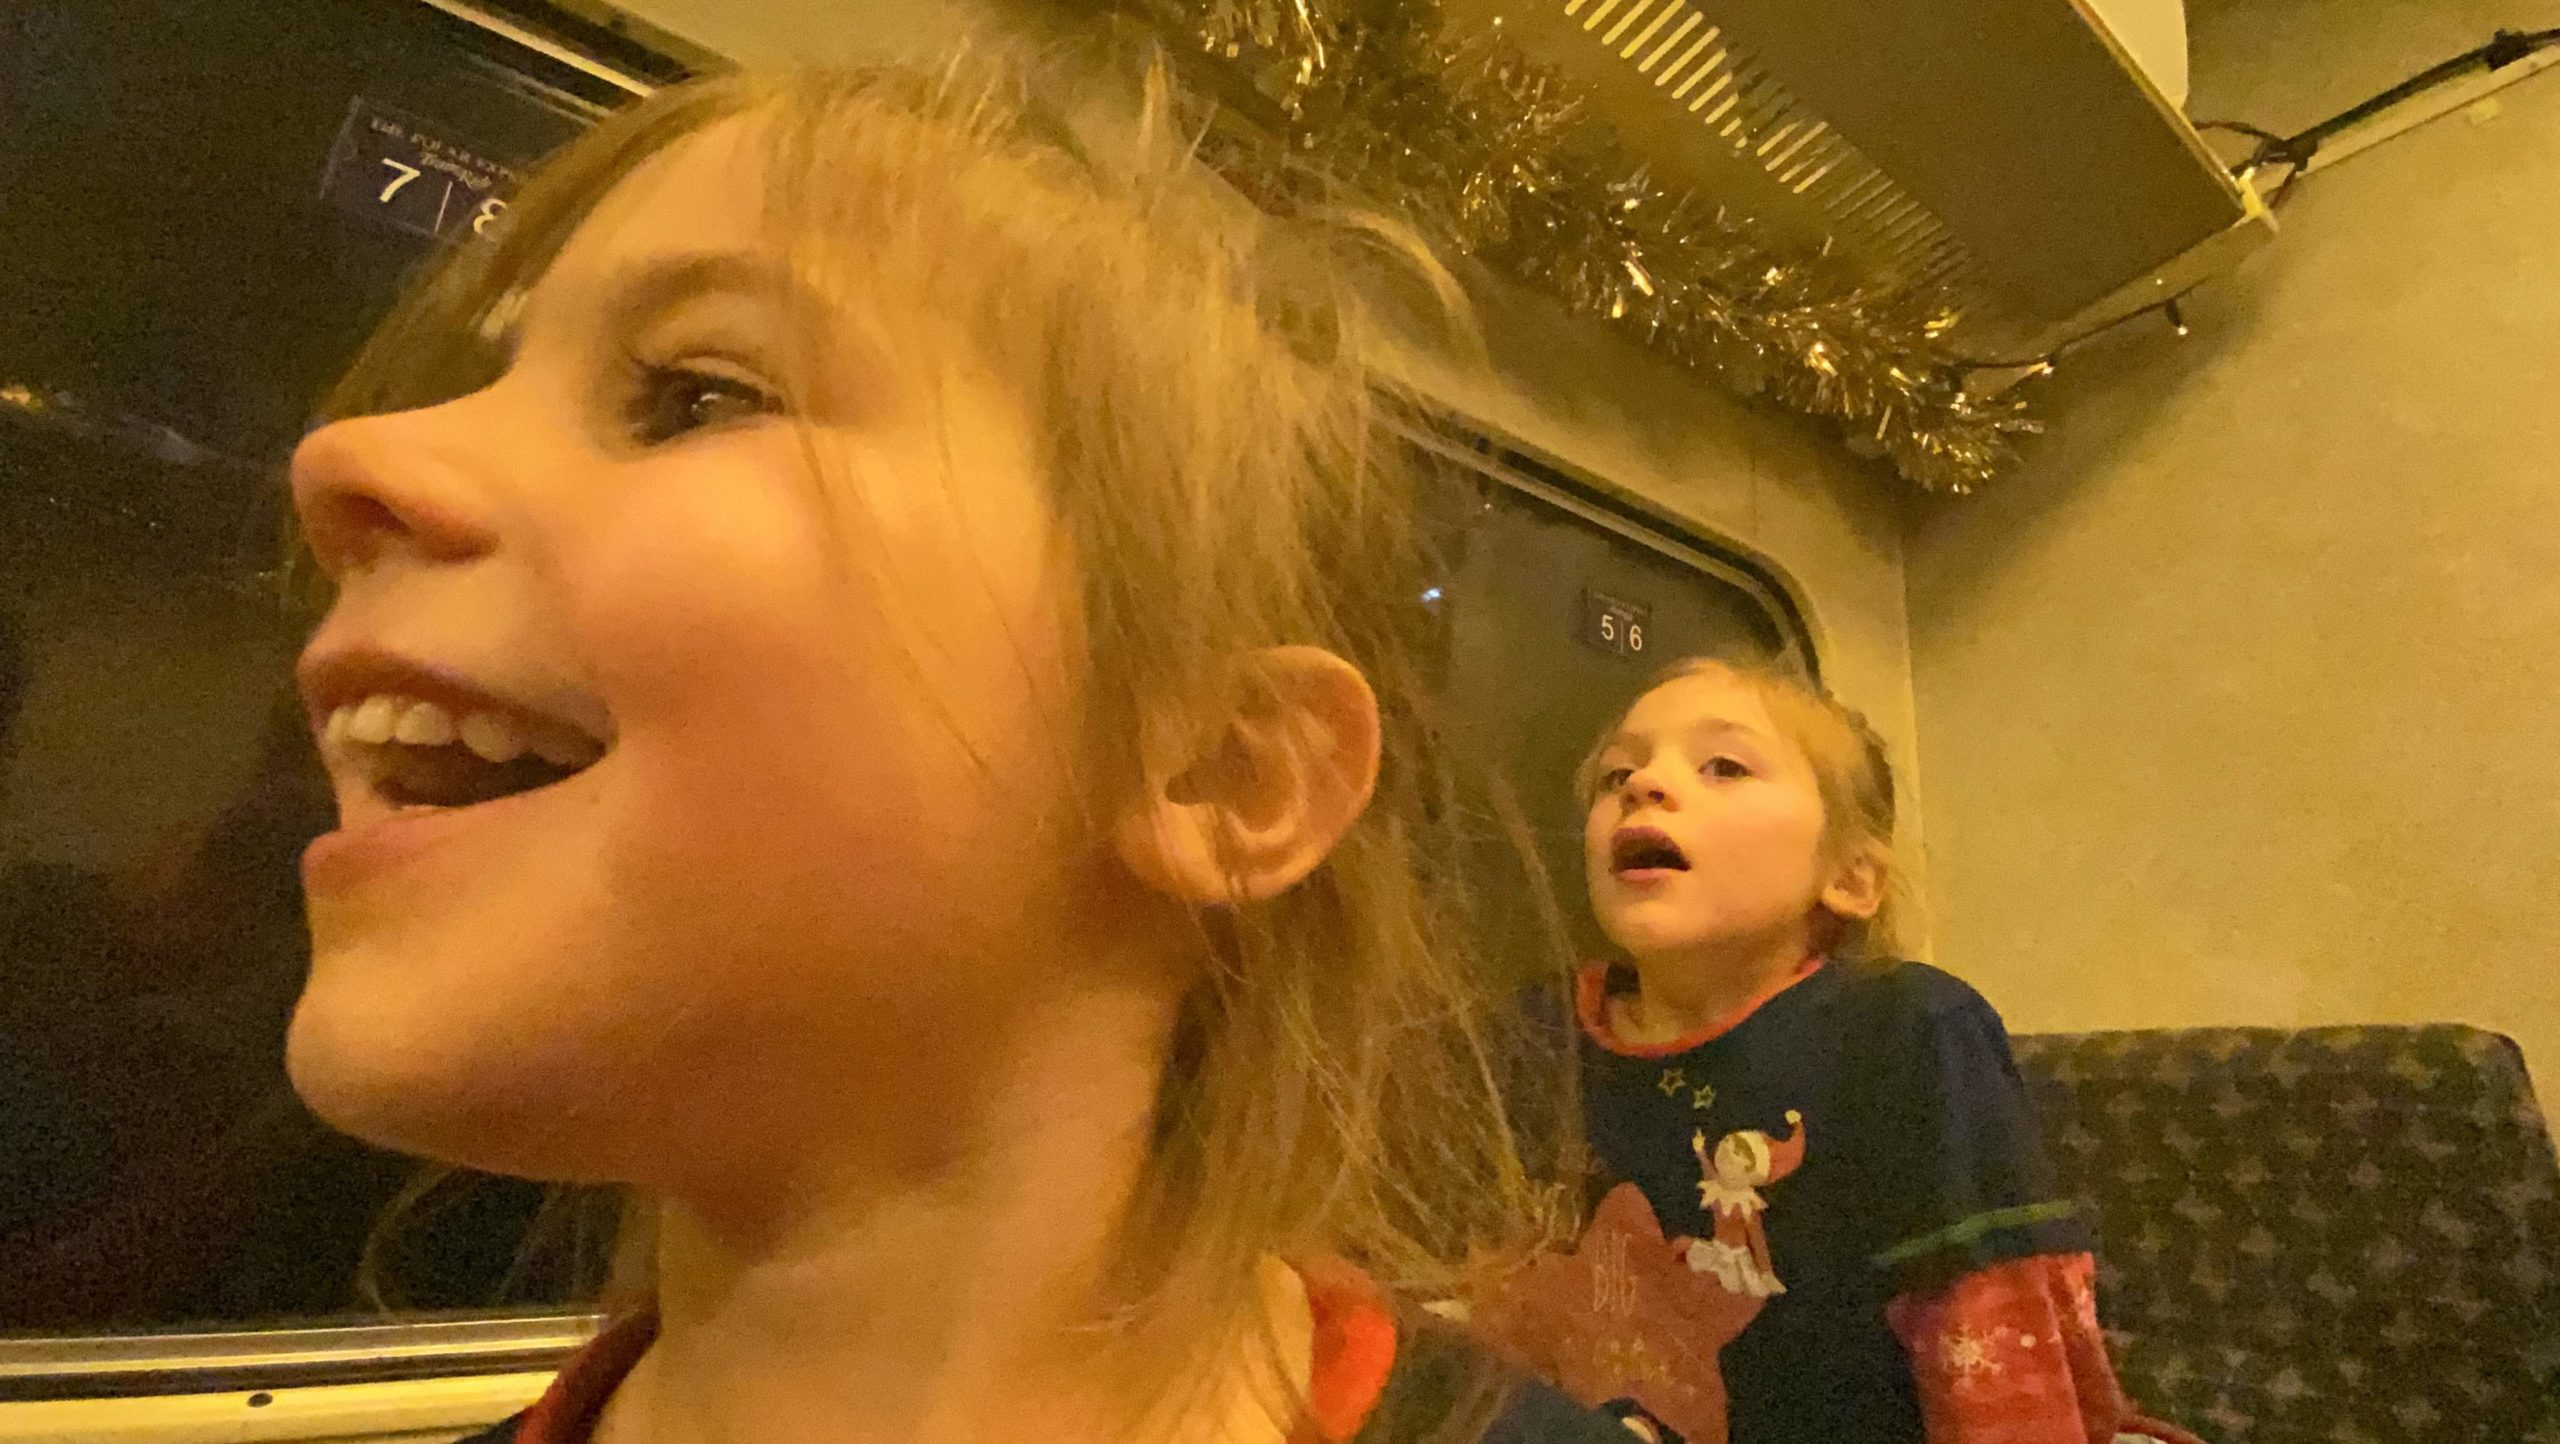 The excitement on The Polar Express